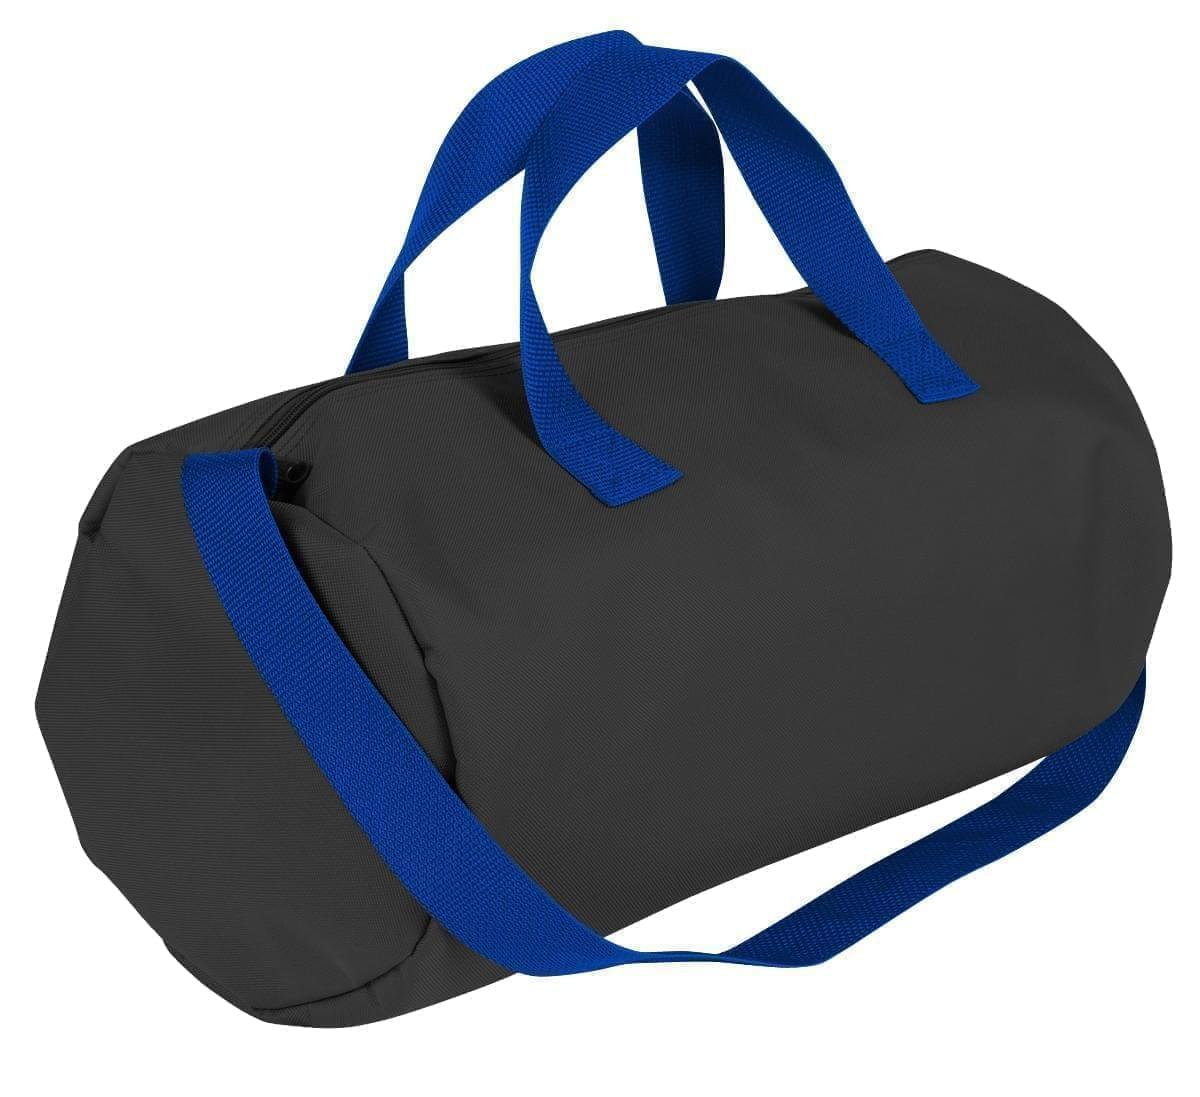 USA Made Nylon Poly Gym Roll Bags, Black-Royal Blue, ROCX31AAO3